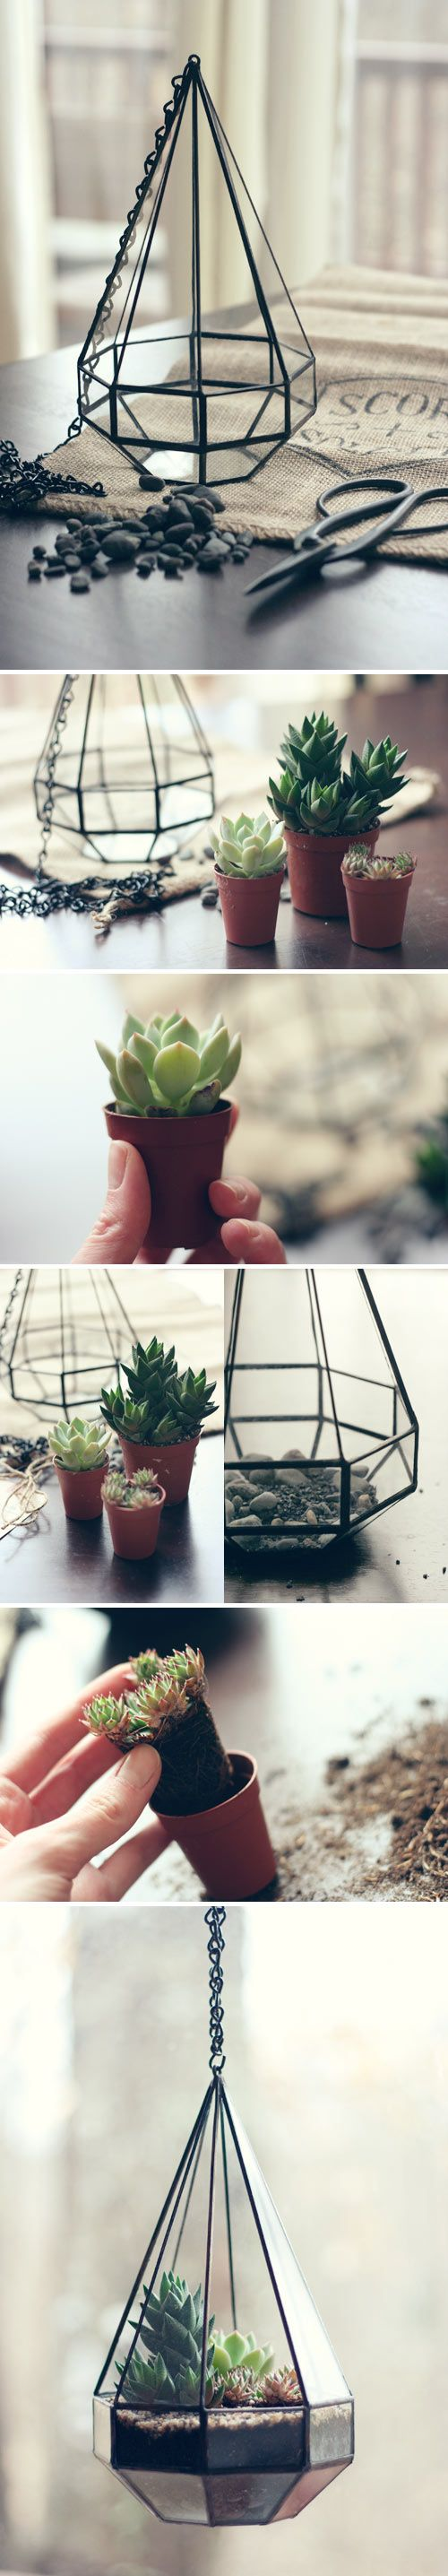 Adorable DIY Terrariums